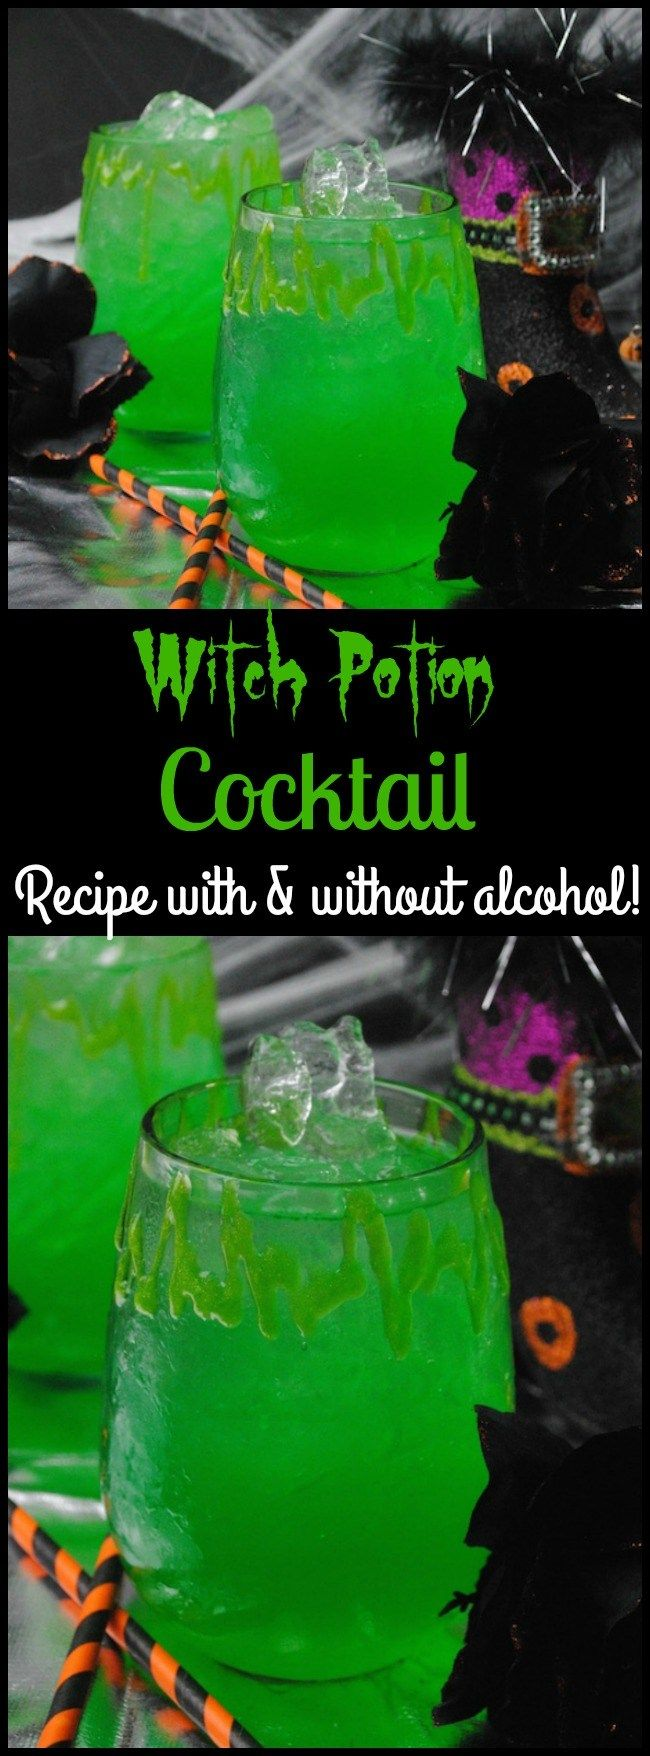 Witches Potion Cocktail Recipe With A Non-Alcoholic Option